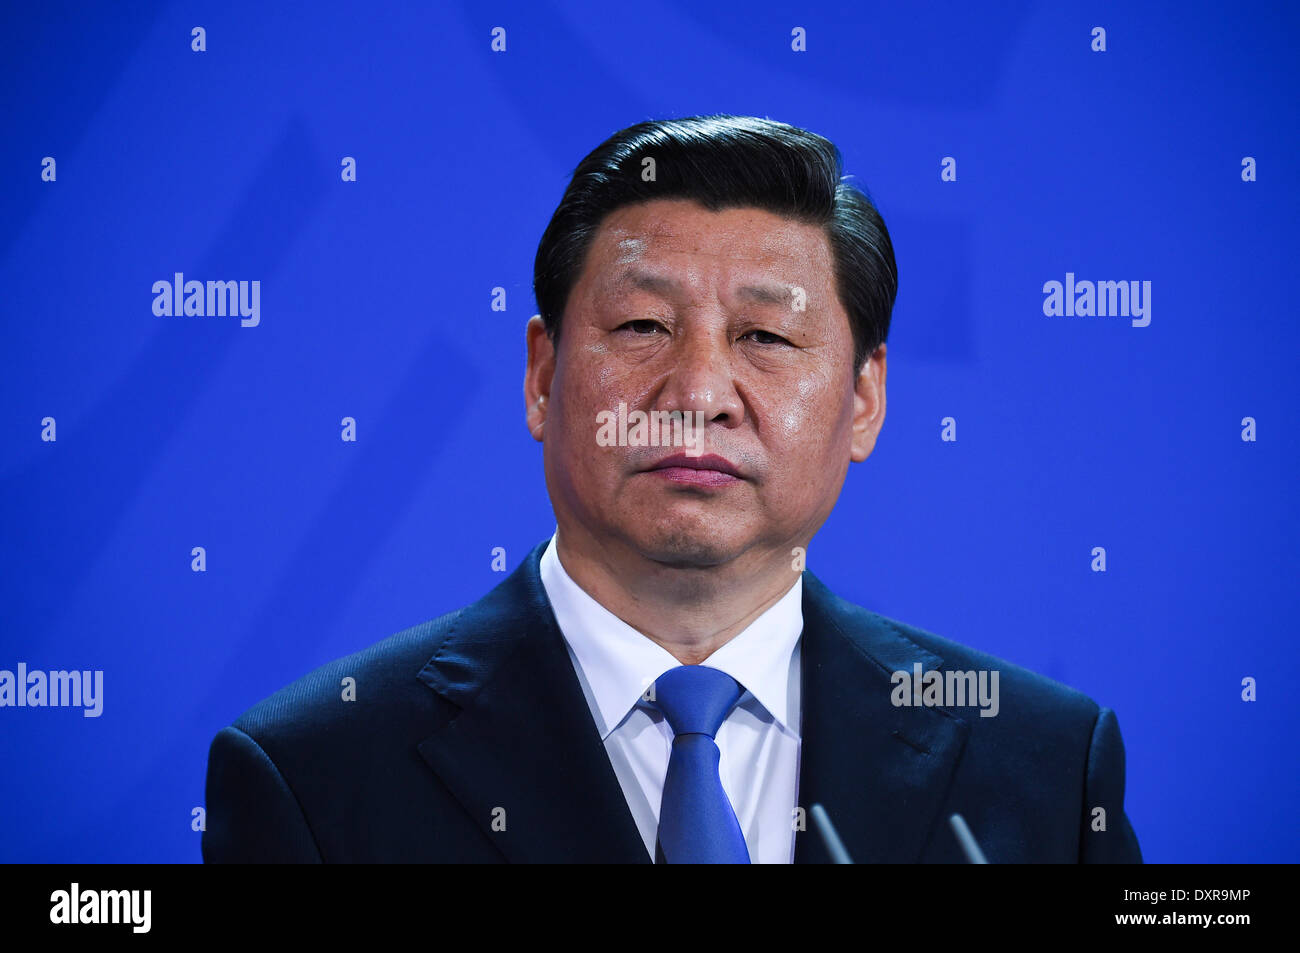 Xi Jinping politician of the People's Republic of China President of his country. in the federal press conference at the Federal Chancellery on Tuesday March 28 2014 in Berlin - Stock Image